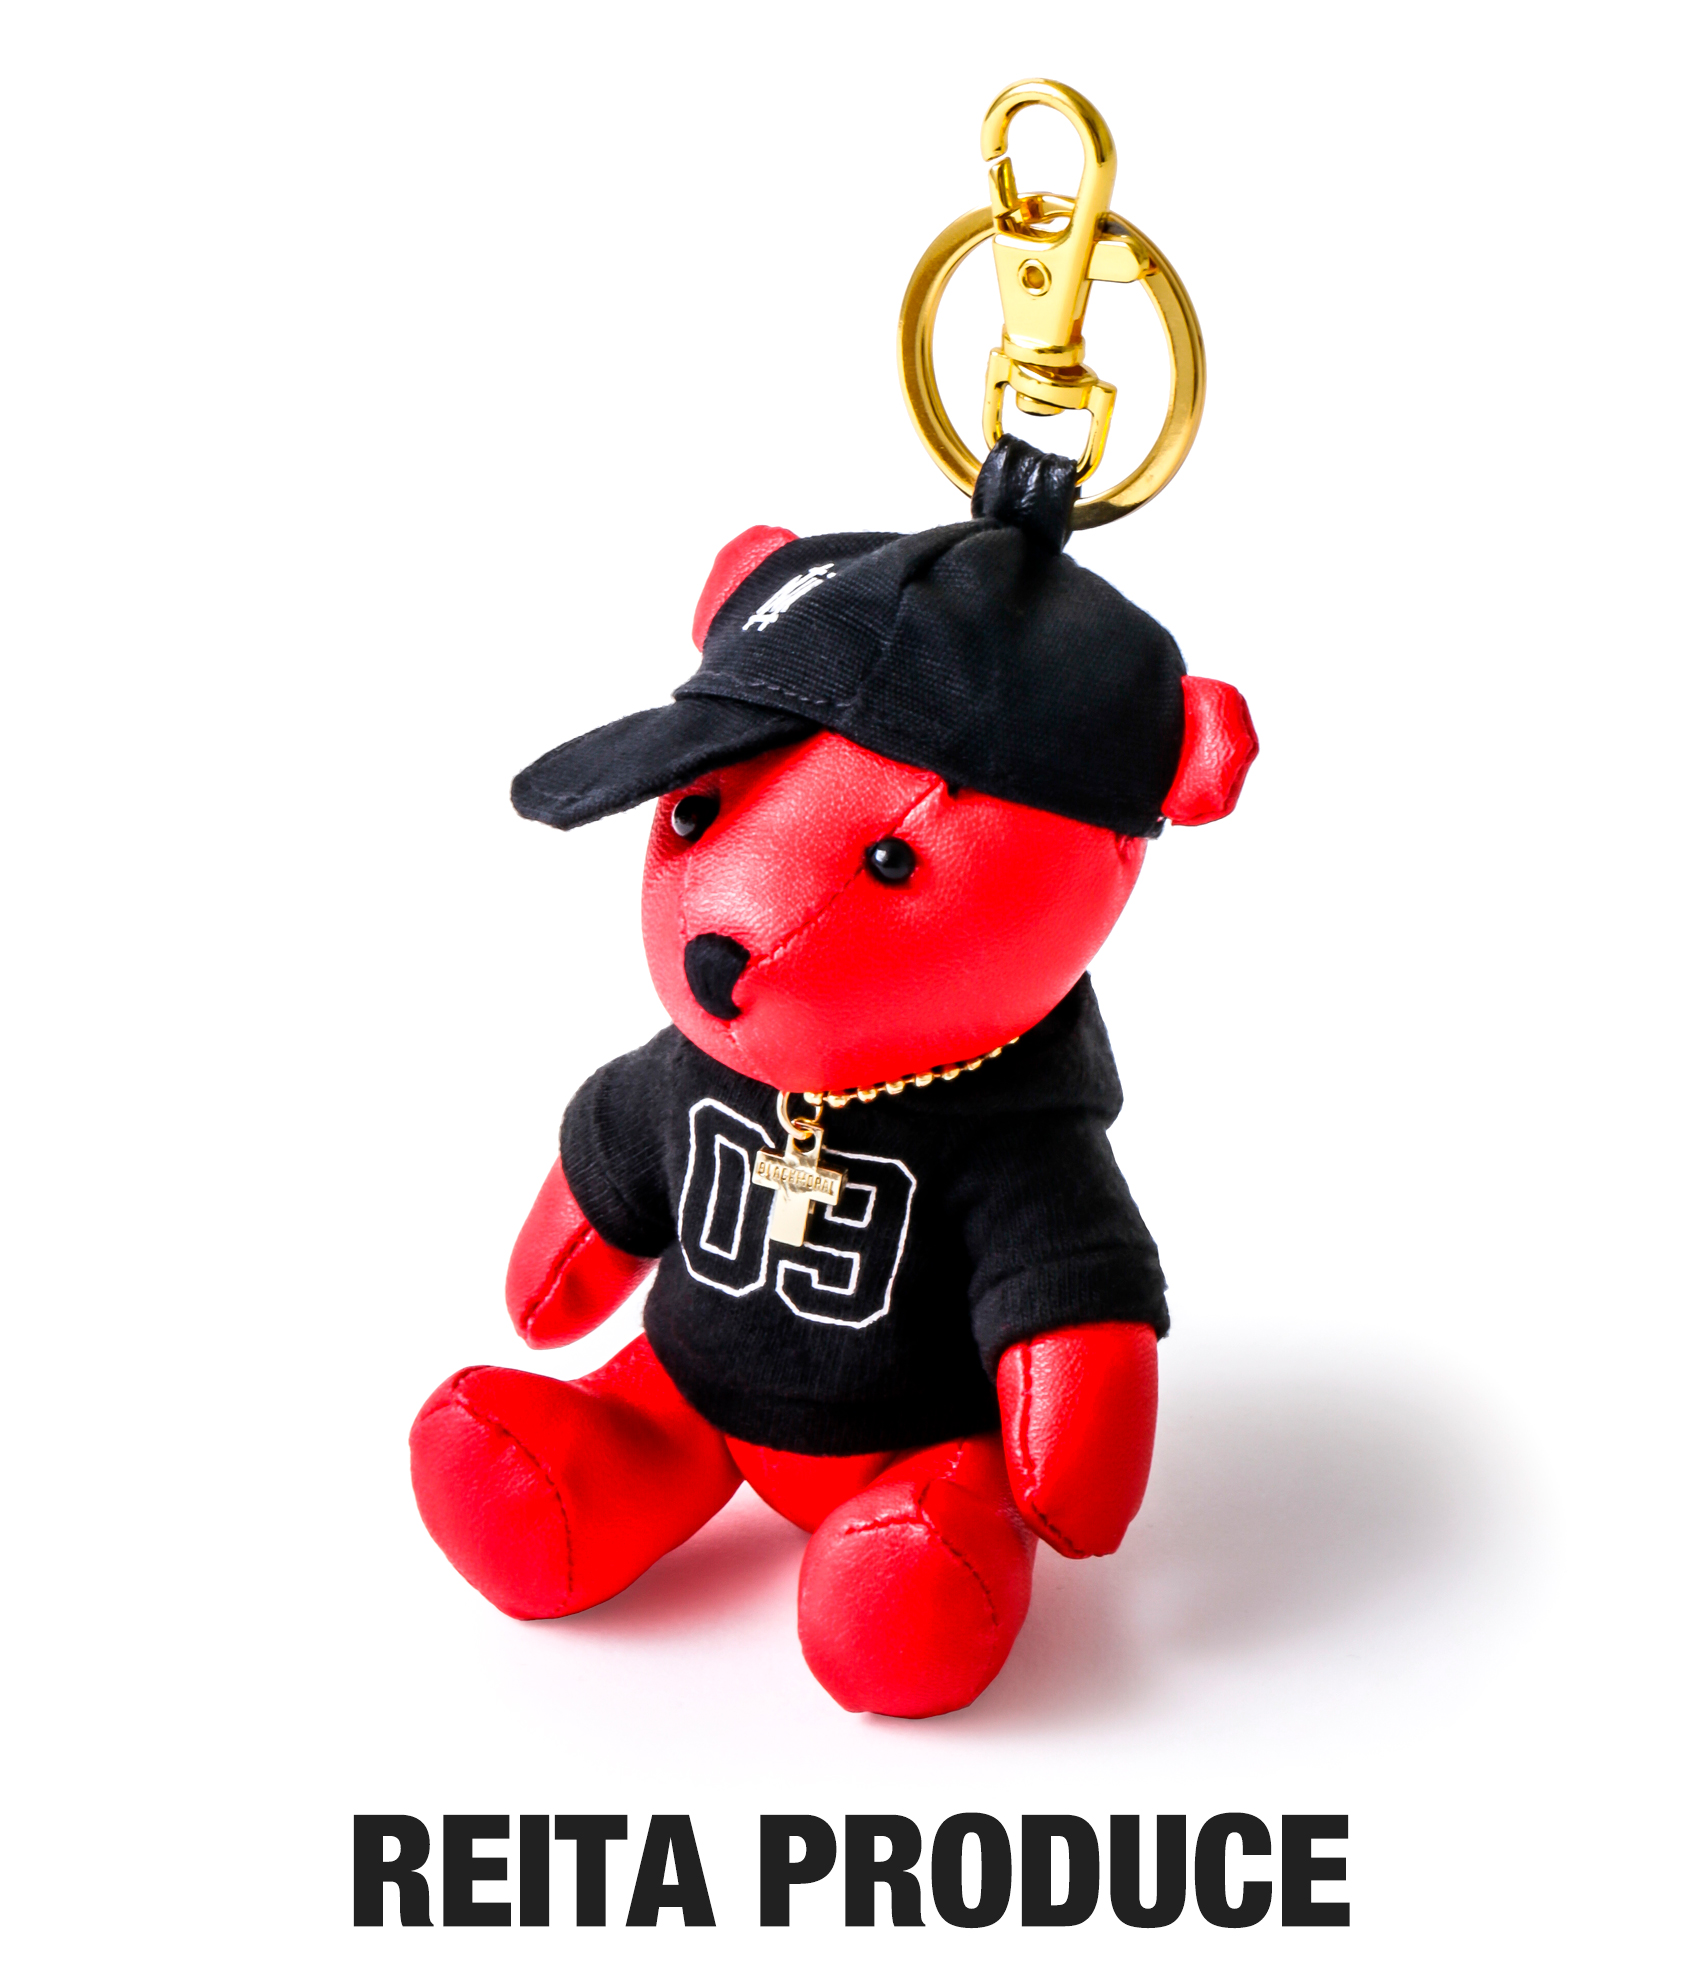 BEAR KEY RING (REITA PRODUCE)